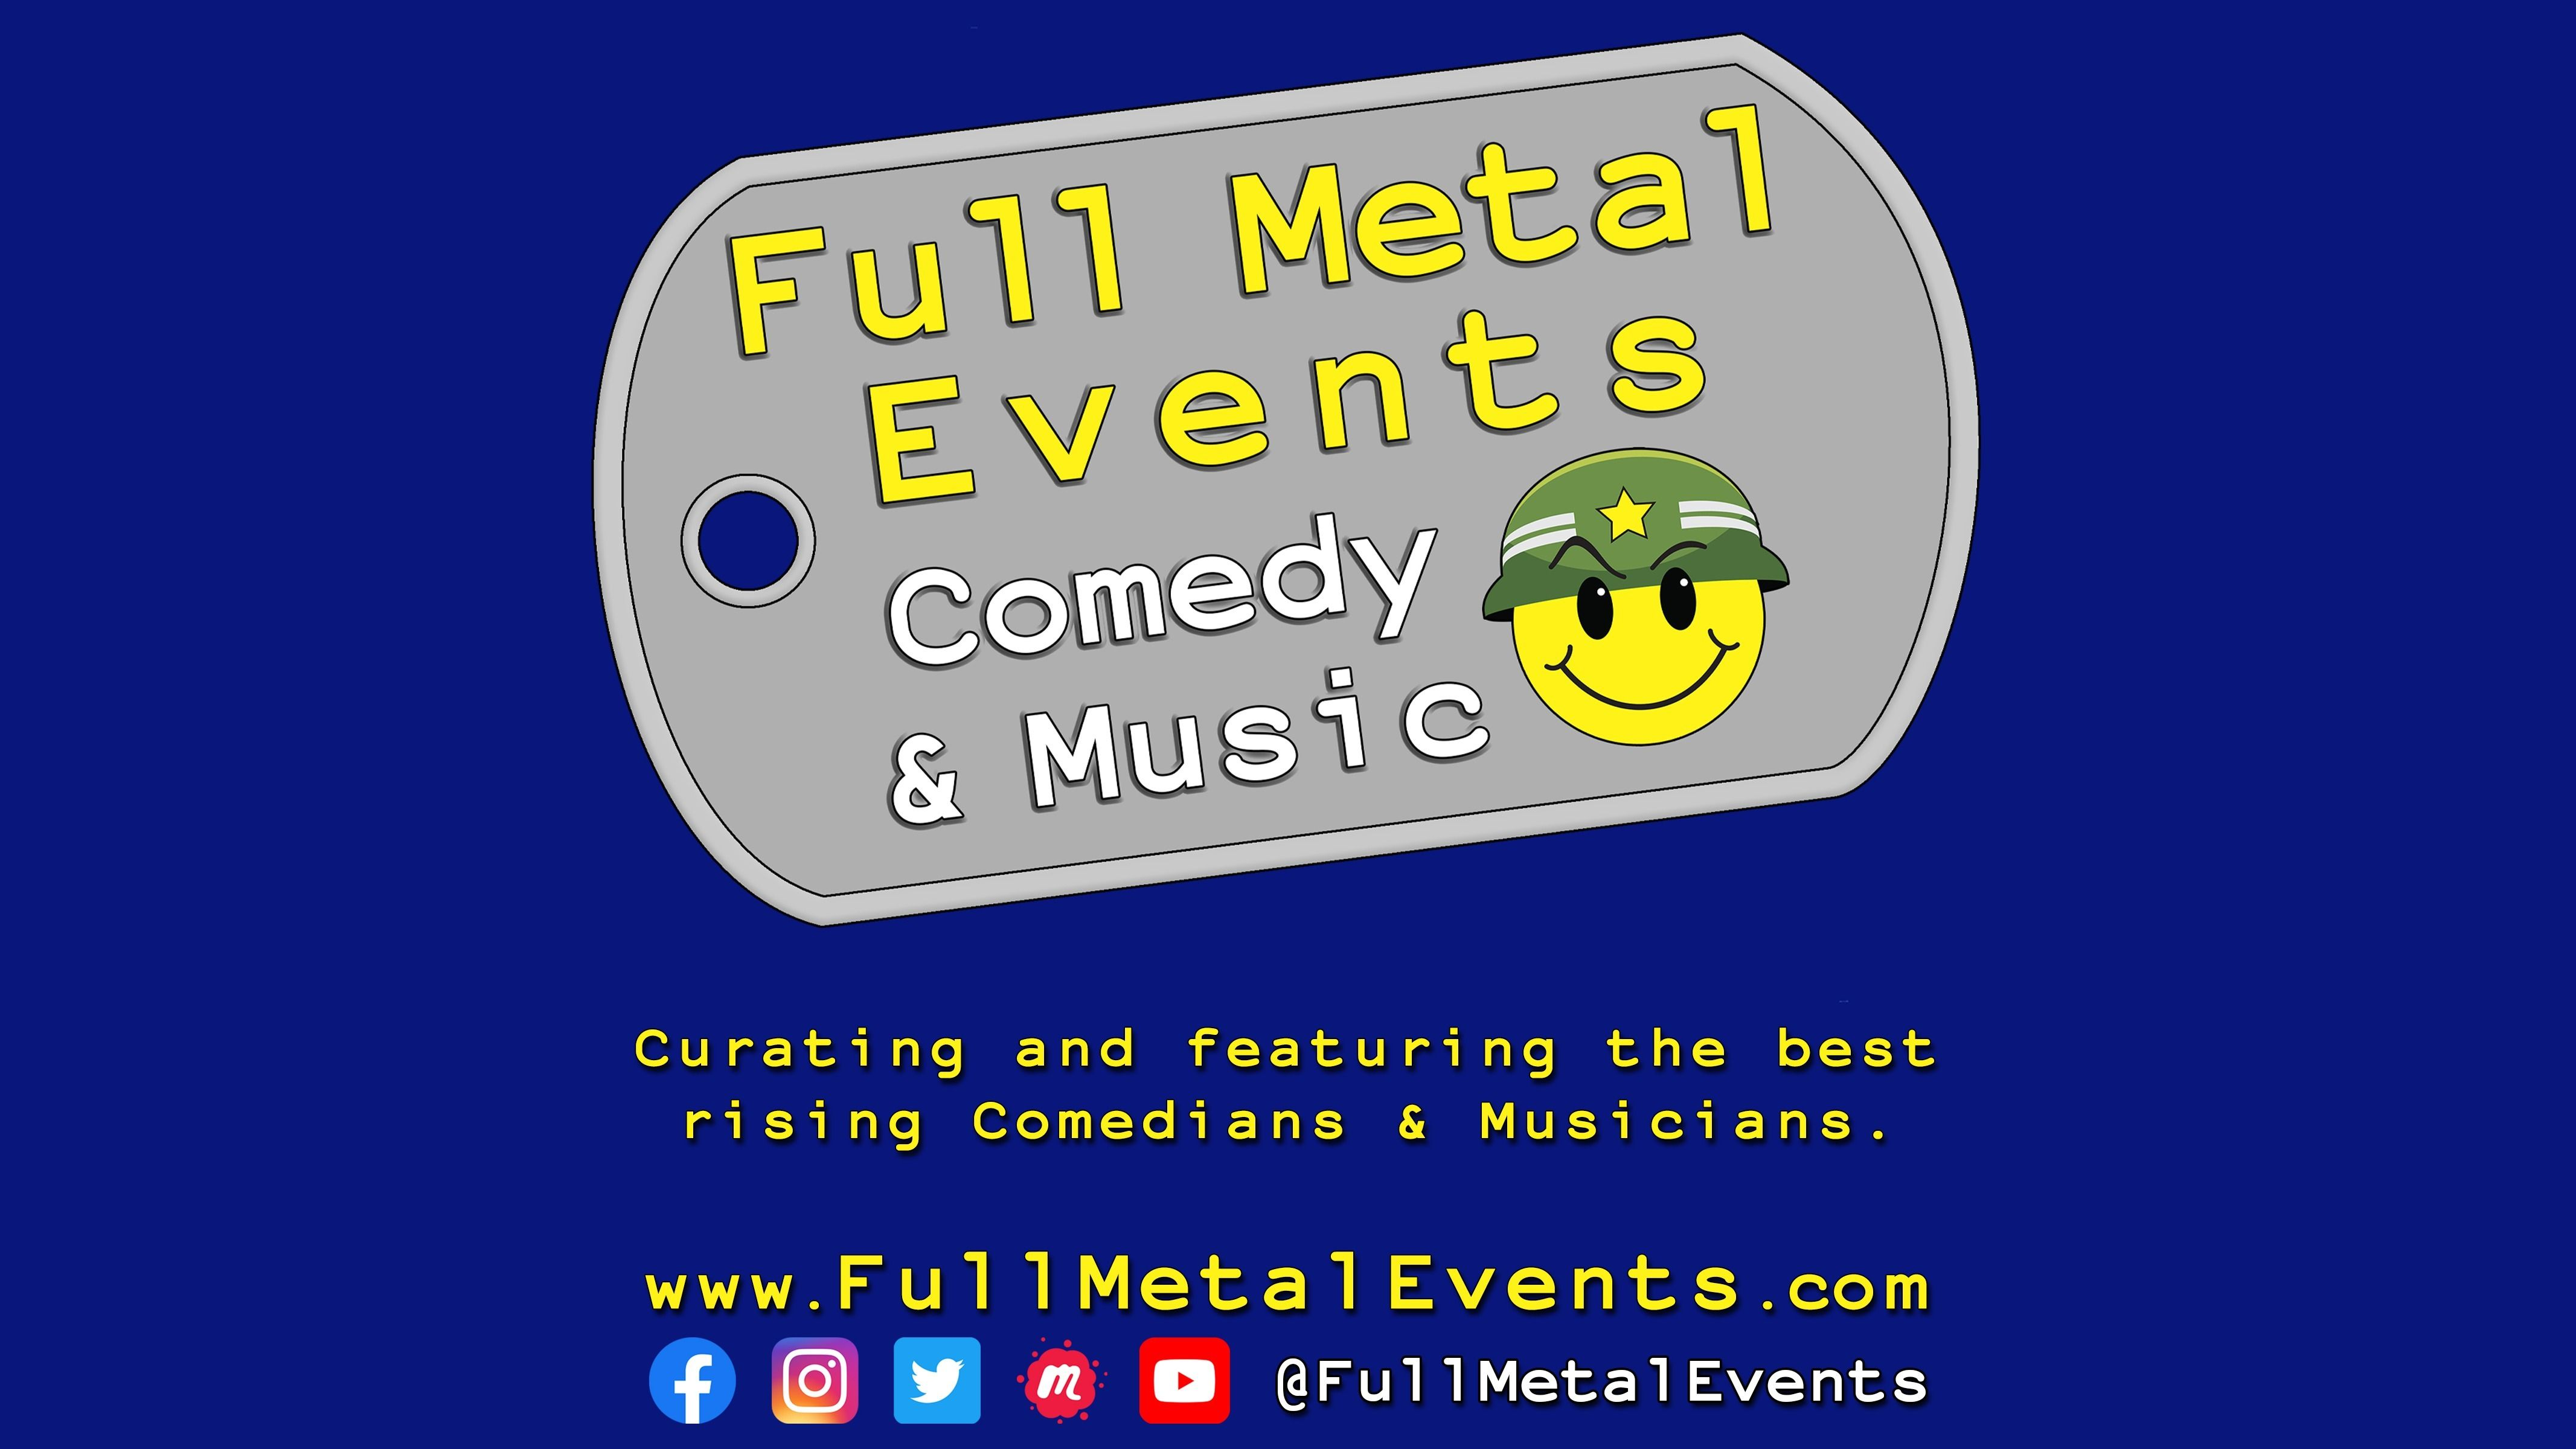 Full Metal Events - Comedy and Music